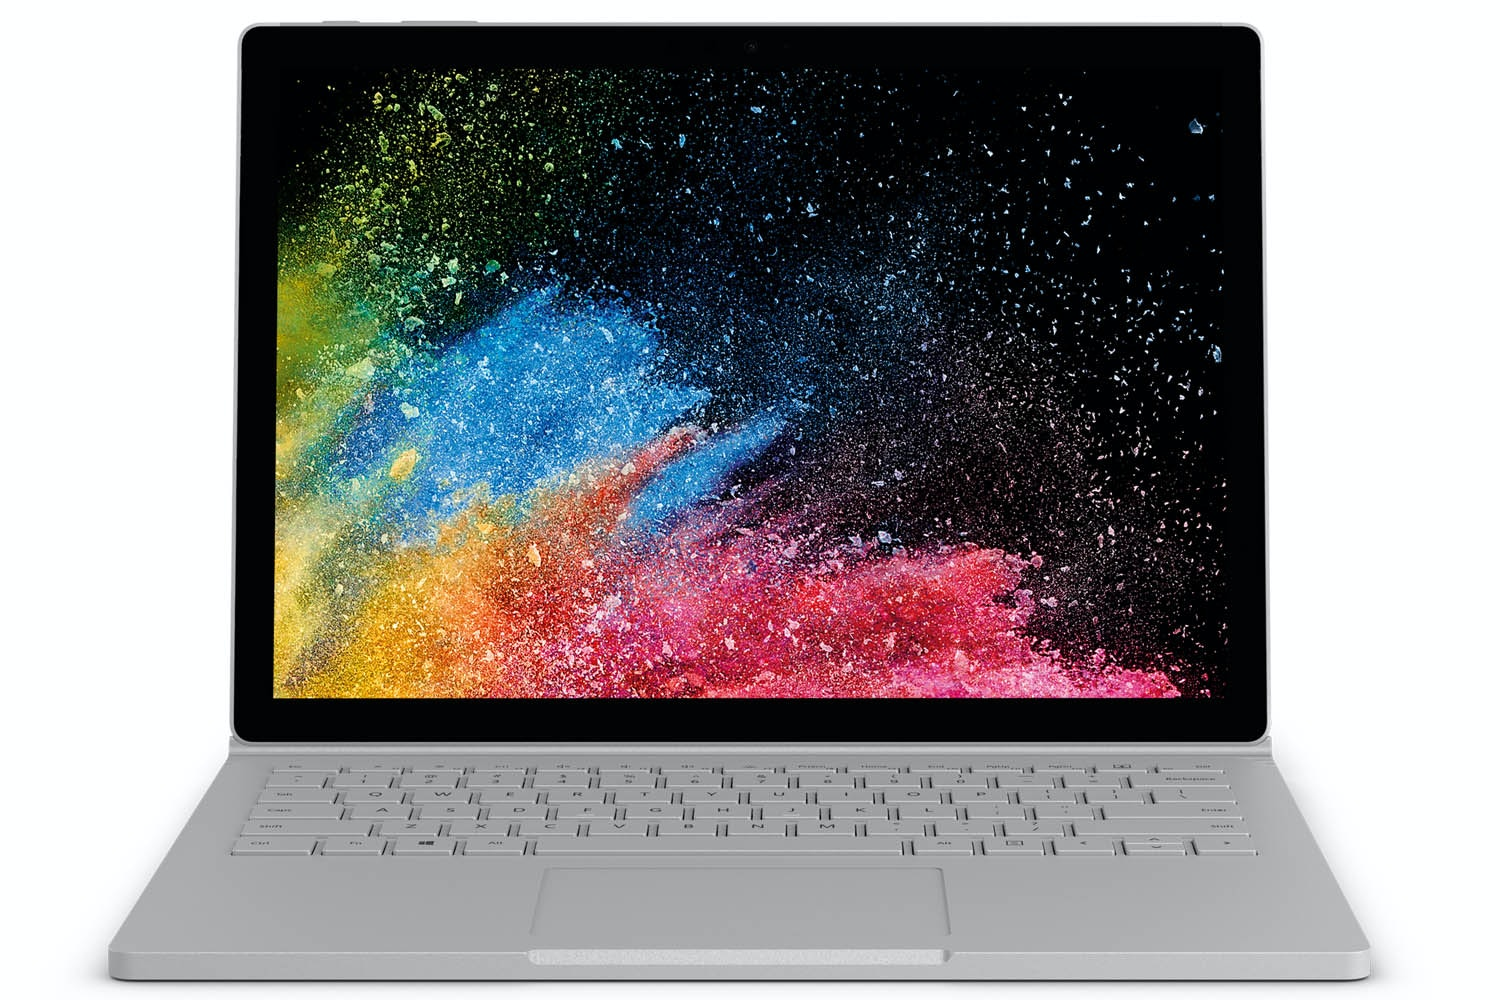 Microsoft Surface Book 2 | Core i7 |16GB | 512GB